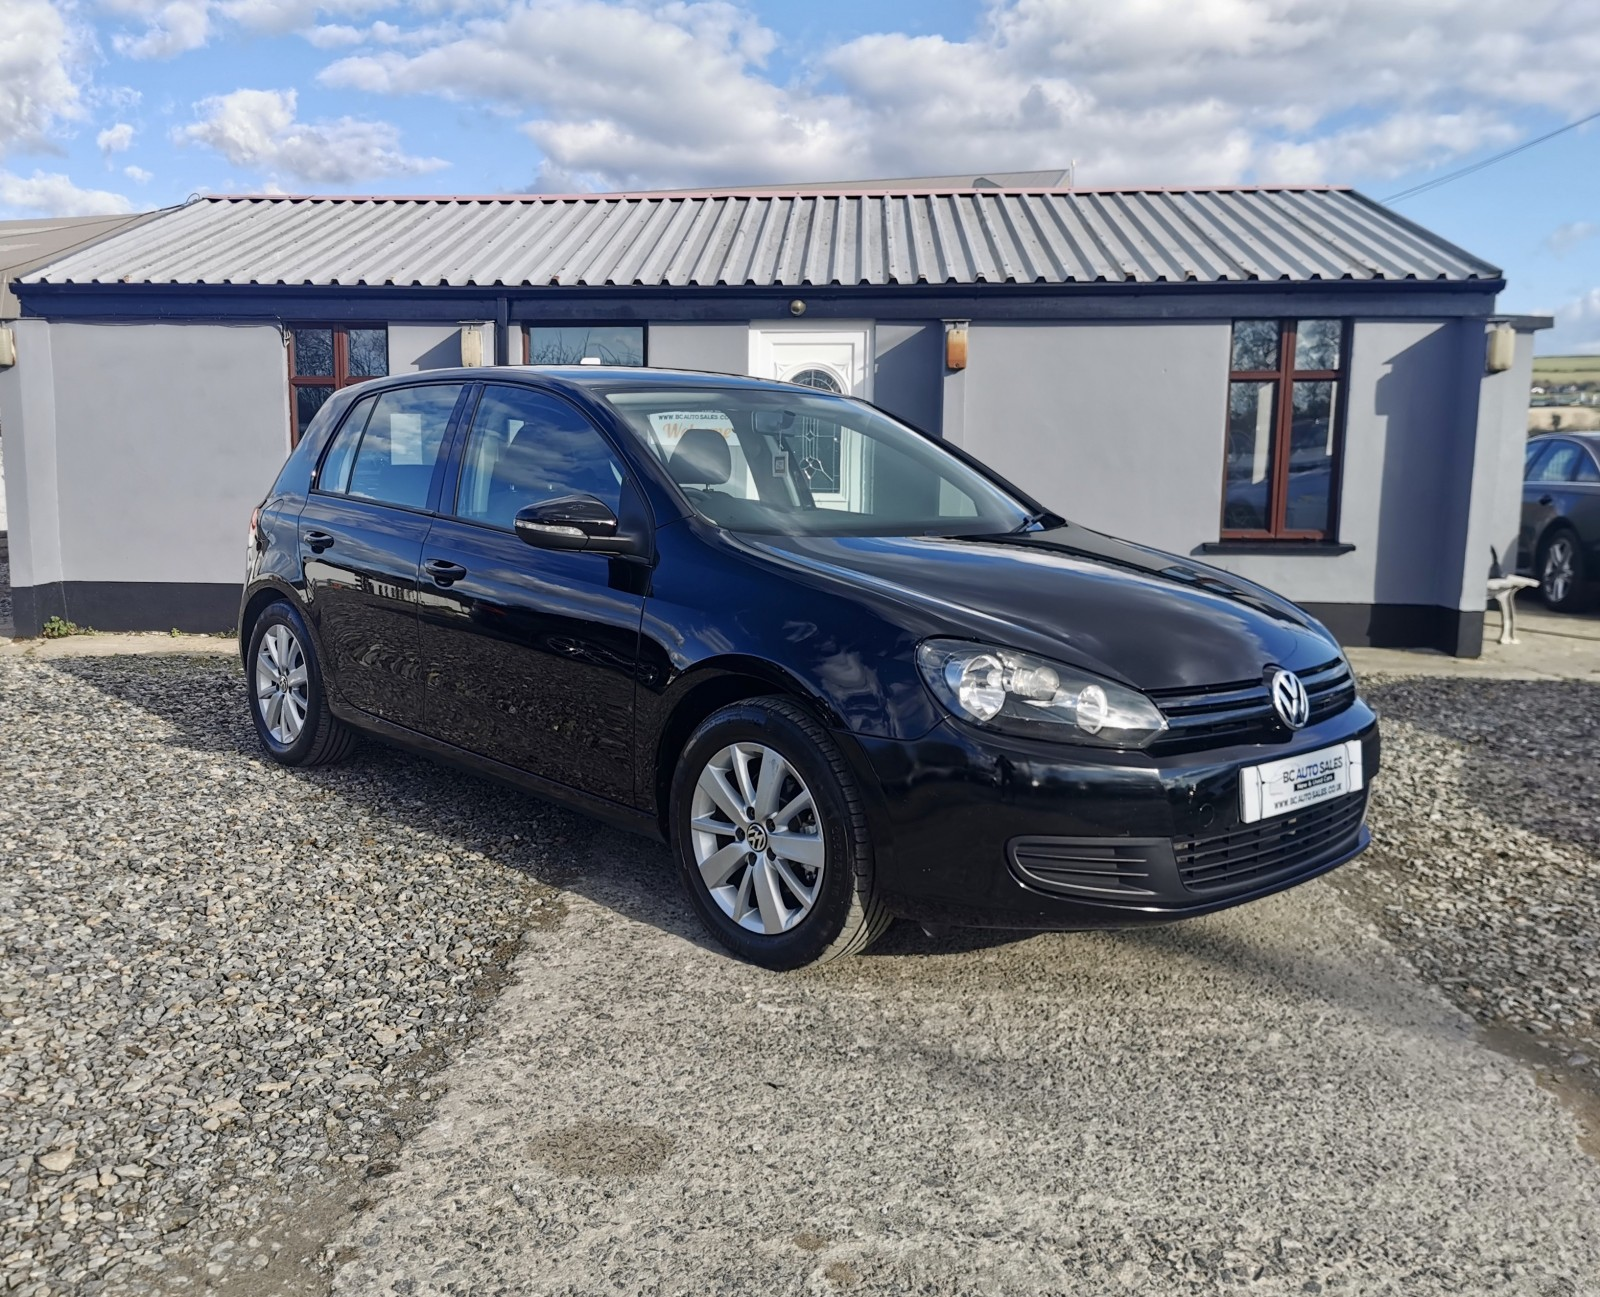 2010 Volkswagen Golf BLUEMOTION TDI Diesel Manual – BC Autosales 17A Airfield Road, Eglinton, Londonderry BT47 3PZ, UK